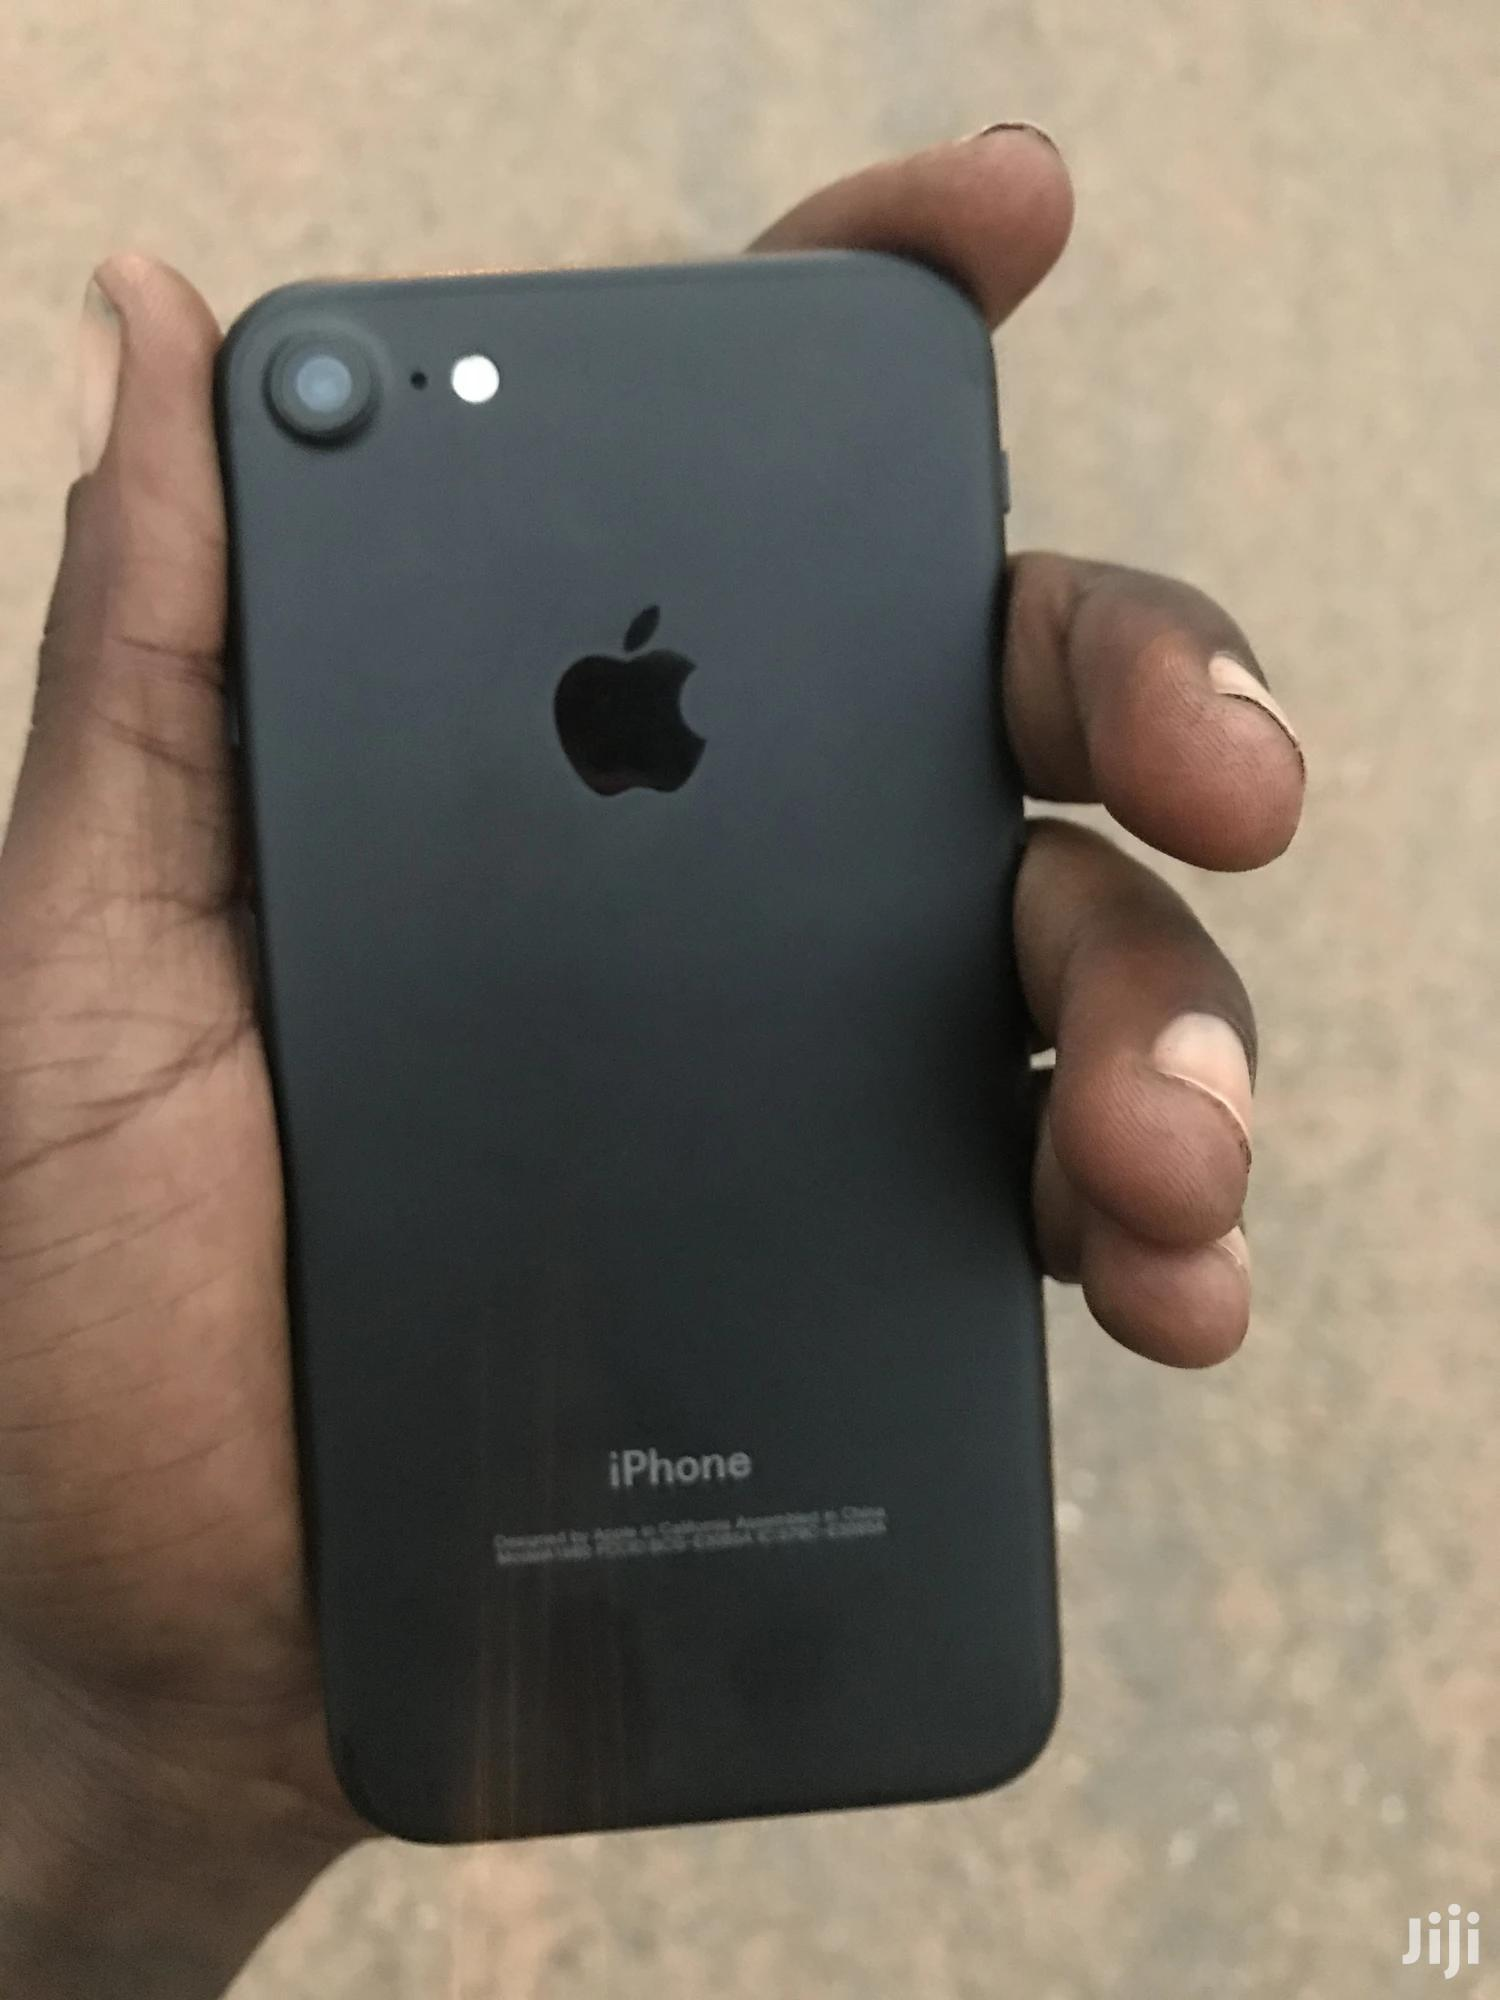 New Apple iPhone 7 32 GB Black | Mobile Phones for sale in Tesano, Greater Accra, Ghana